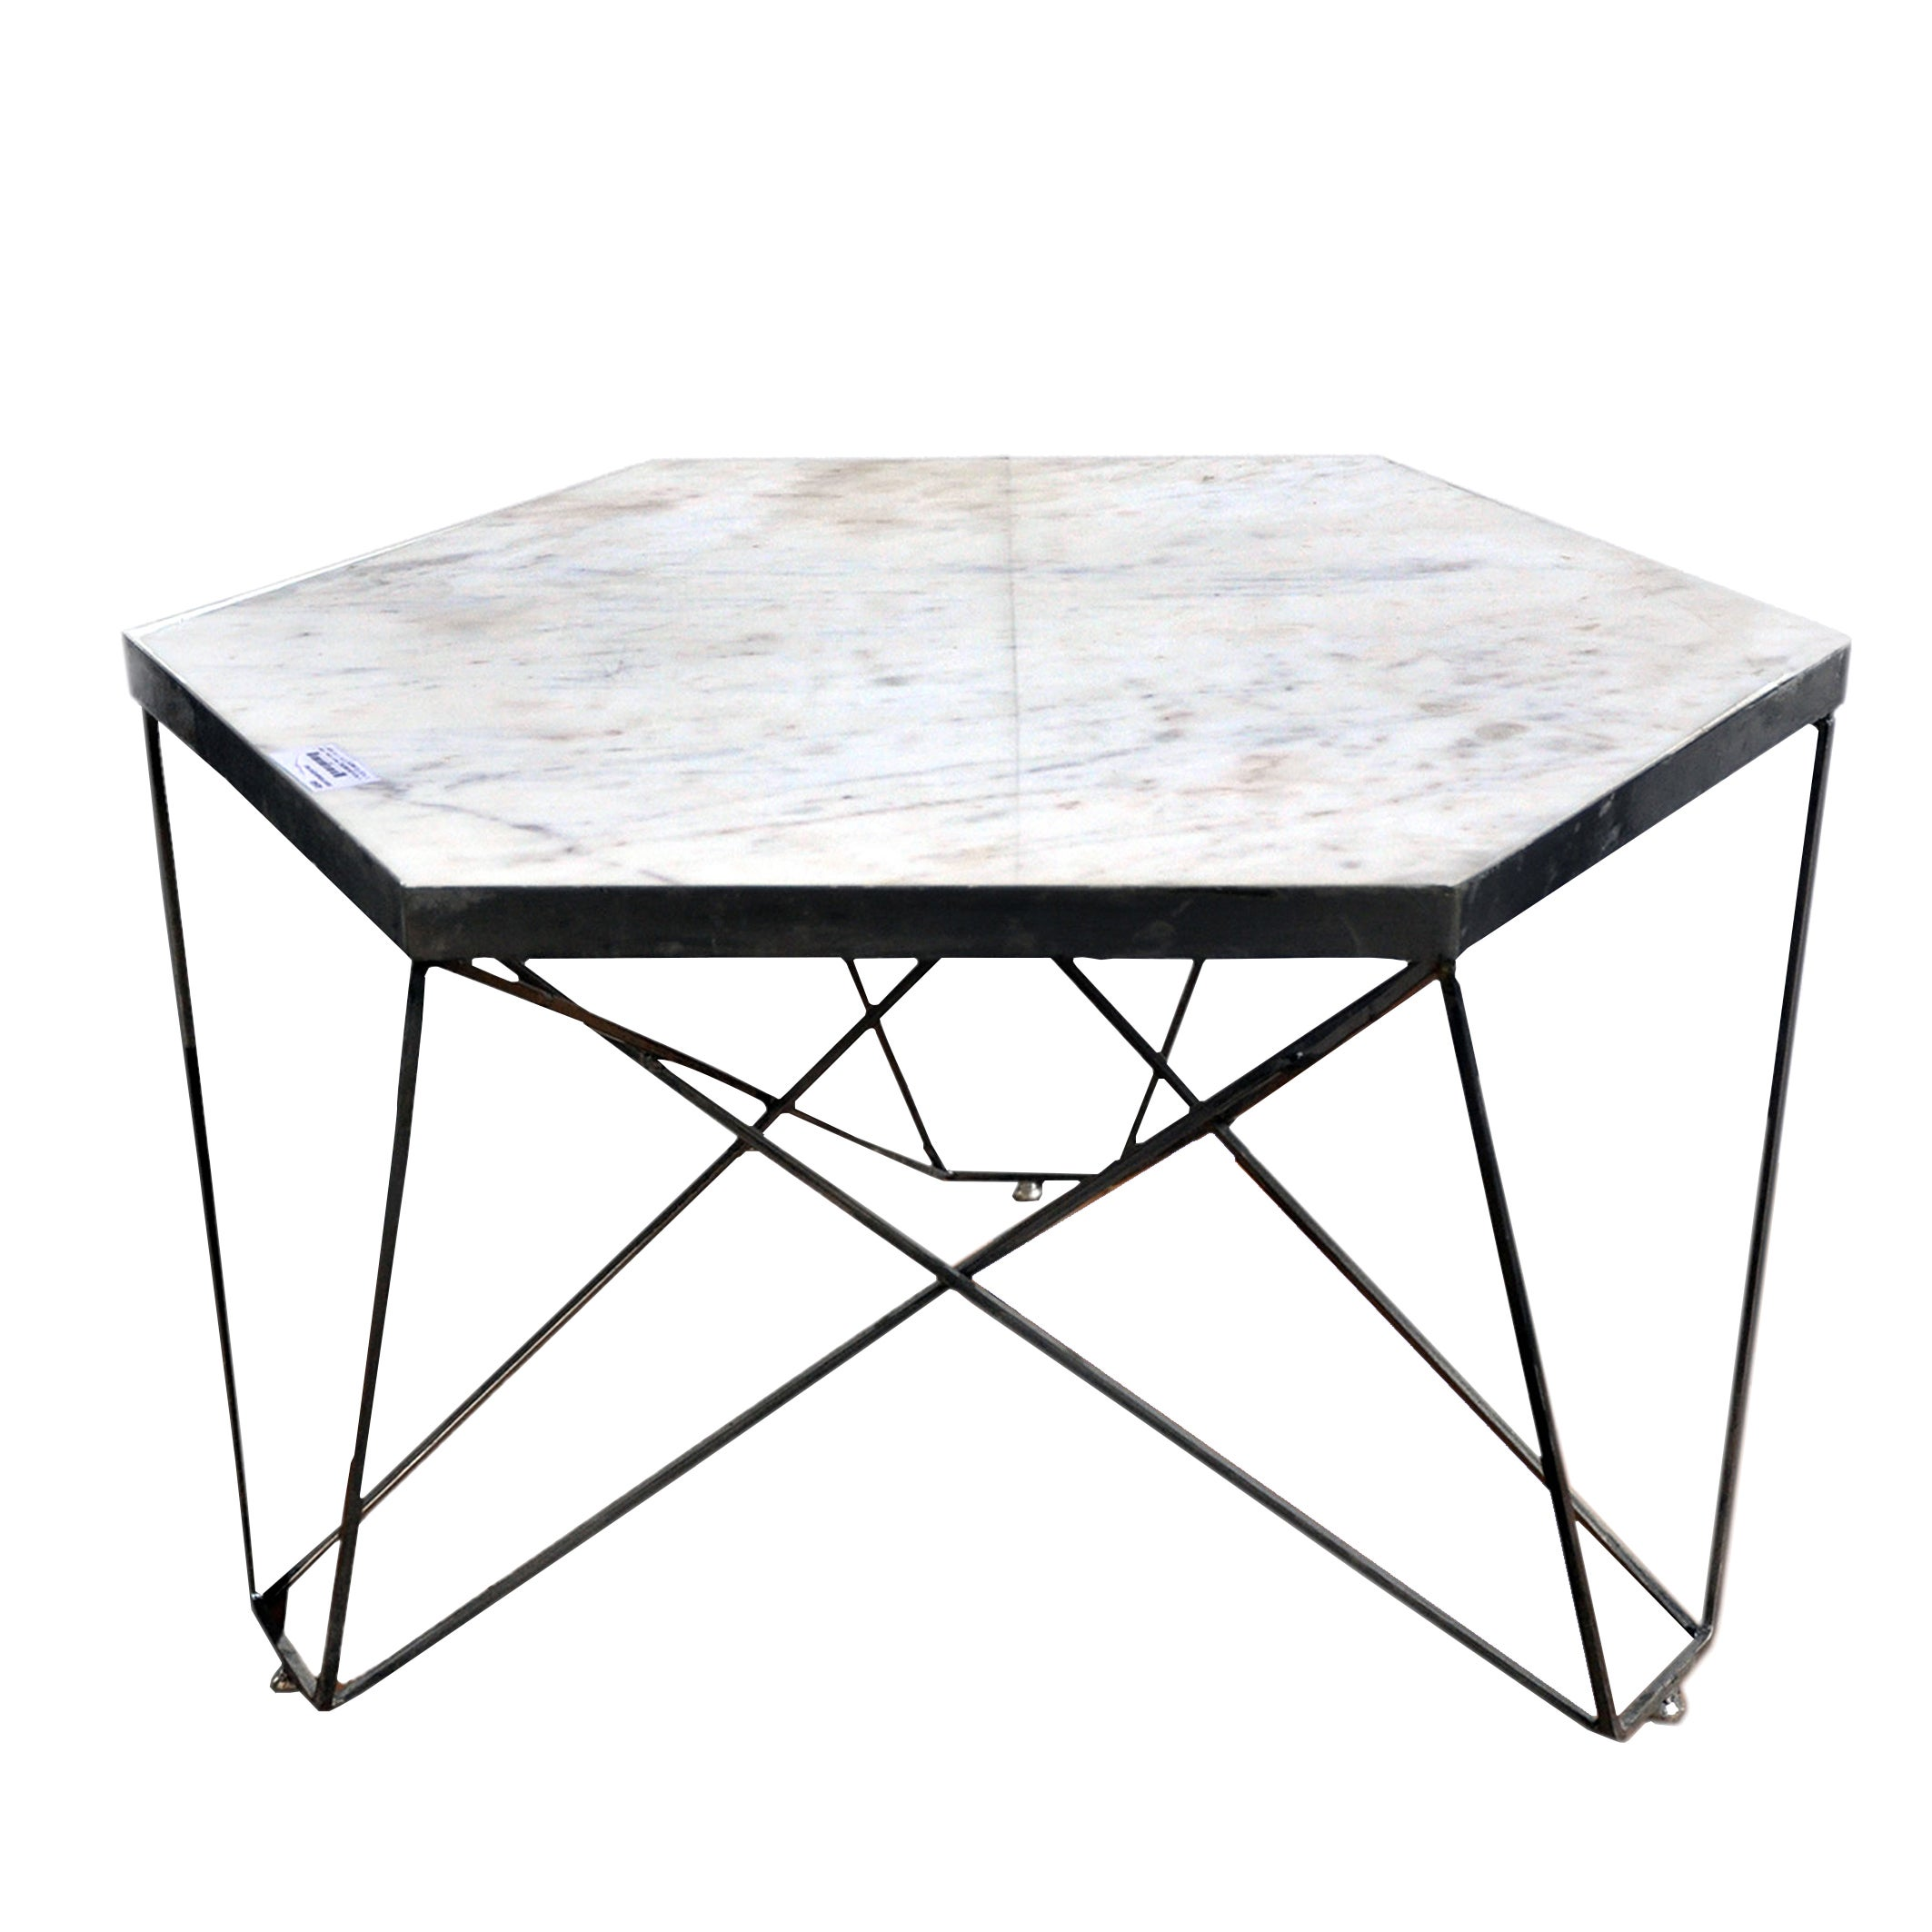 Hexagon Marble Coffee Table Free Shipping Today 12715441